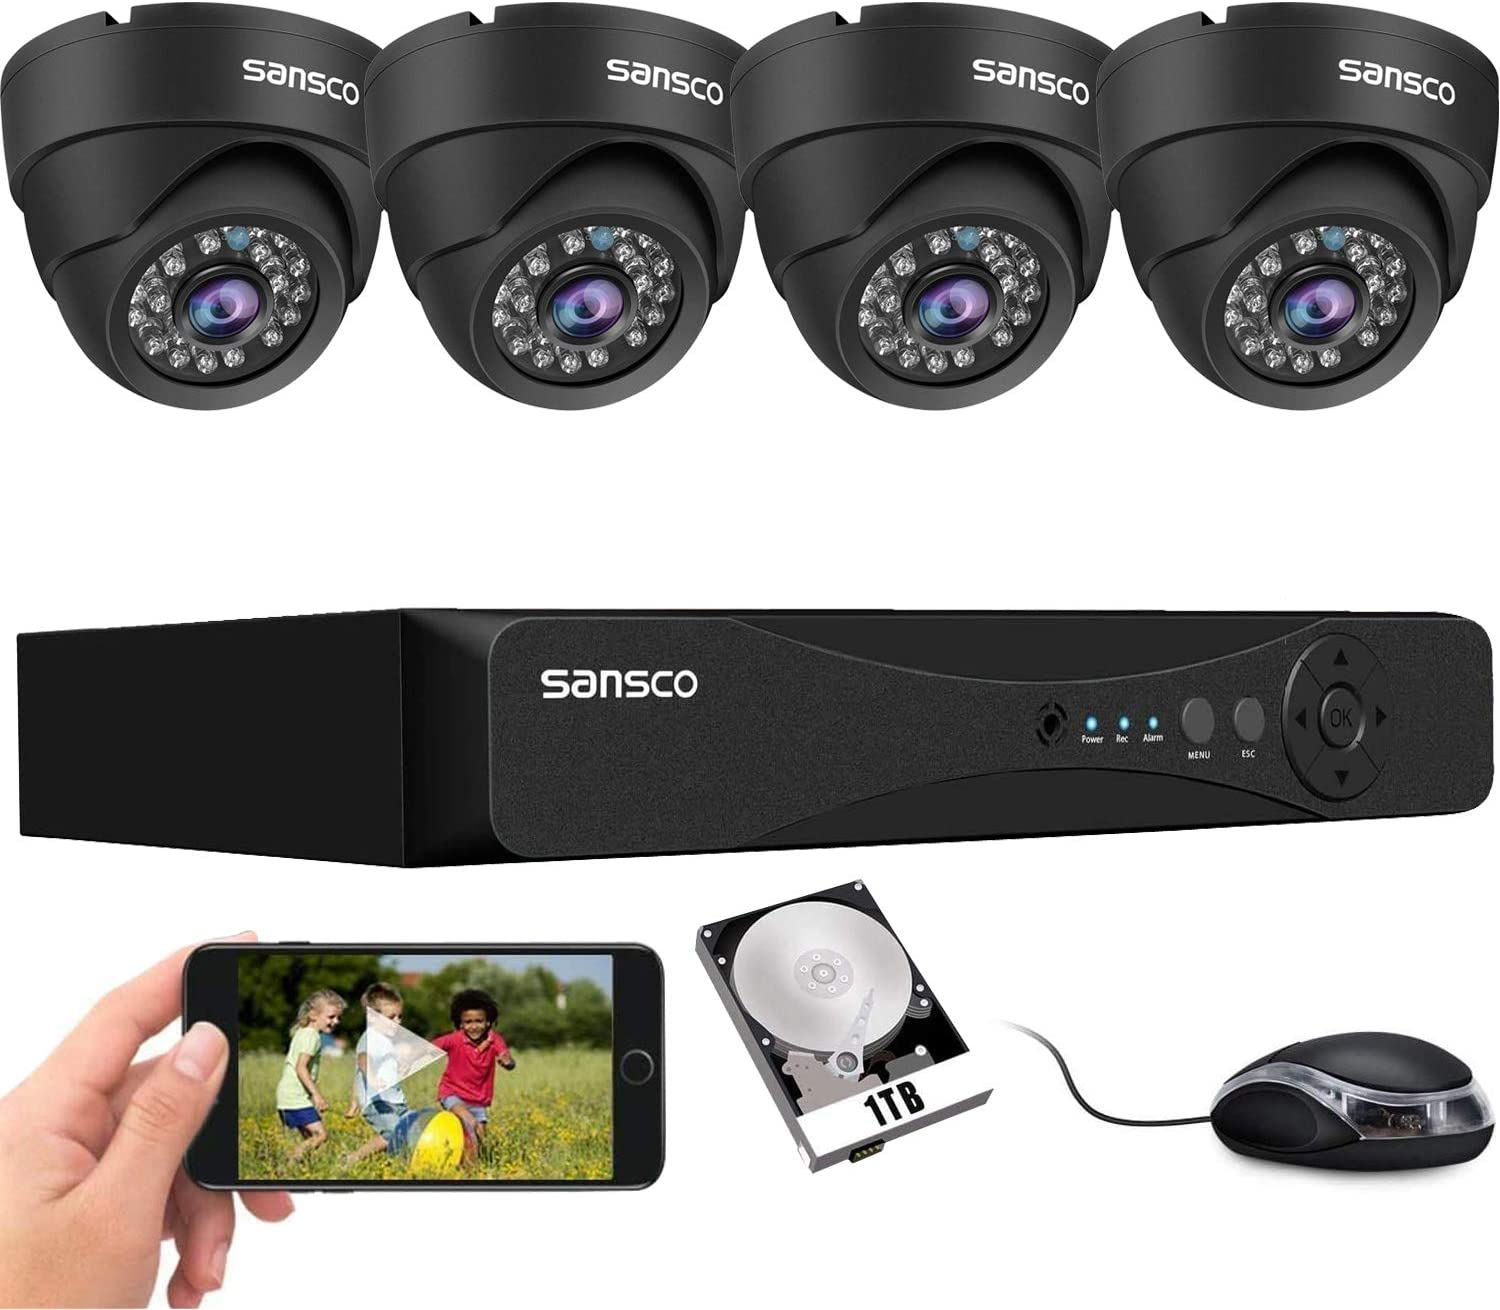 SANSCO 8CH Home Security Camera System with 5MP DVR Recorder and 4Pcs Indoor Outdoor CCTV Dome Cameras, 8 Channel DVR with 1TB HDD, Night Vision, Instant Email and APP Alarm Alert, Easy Remote Access